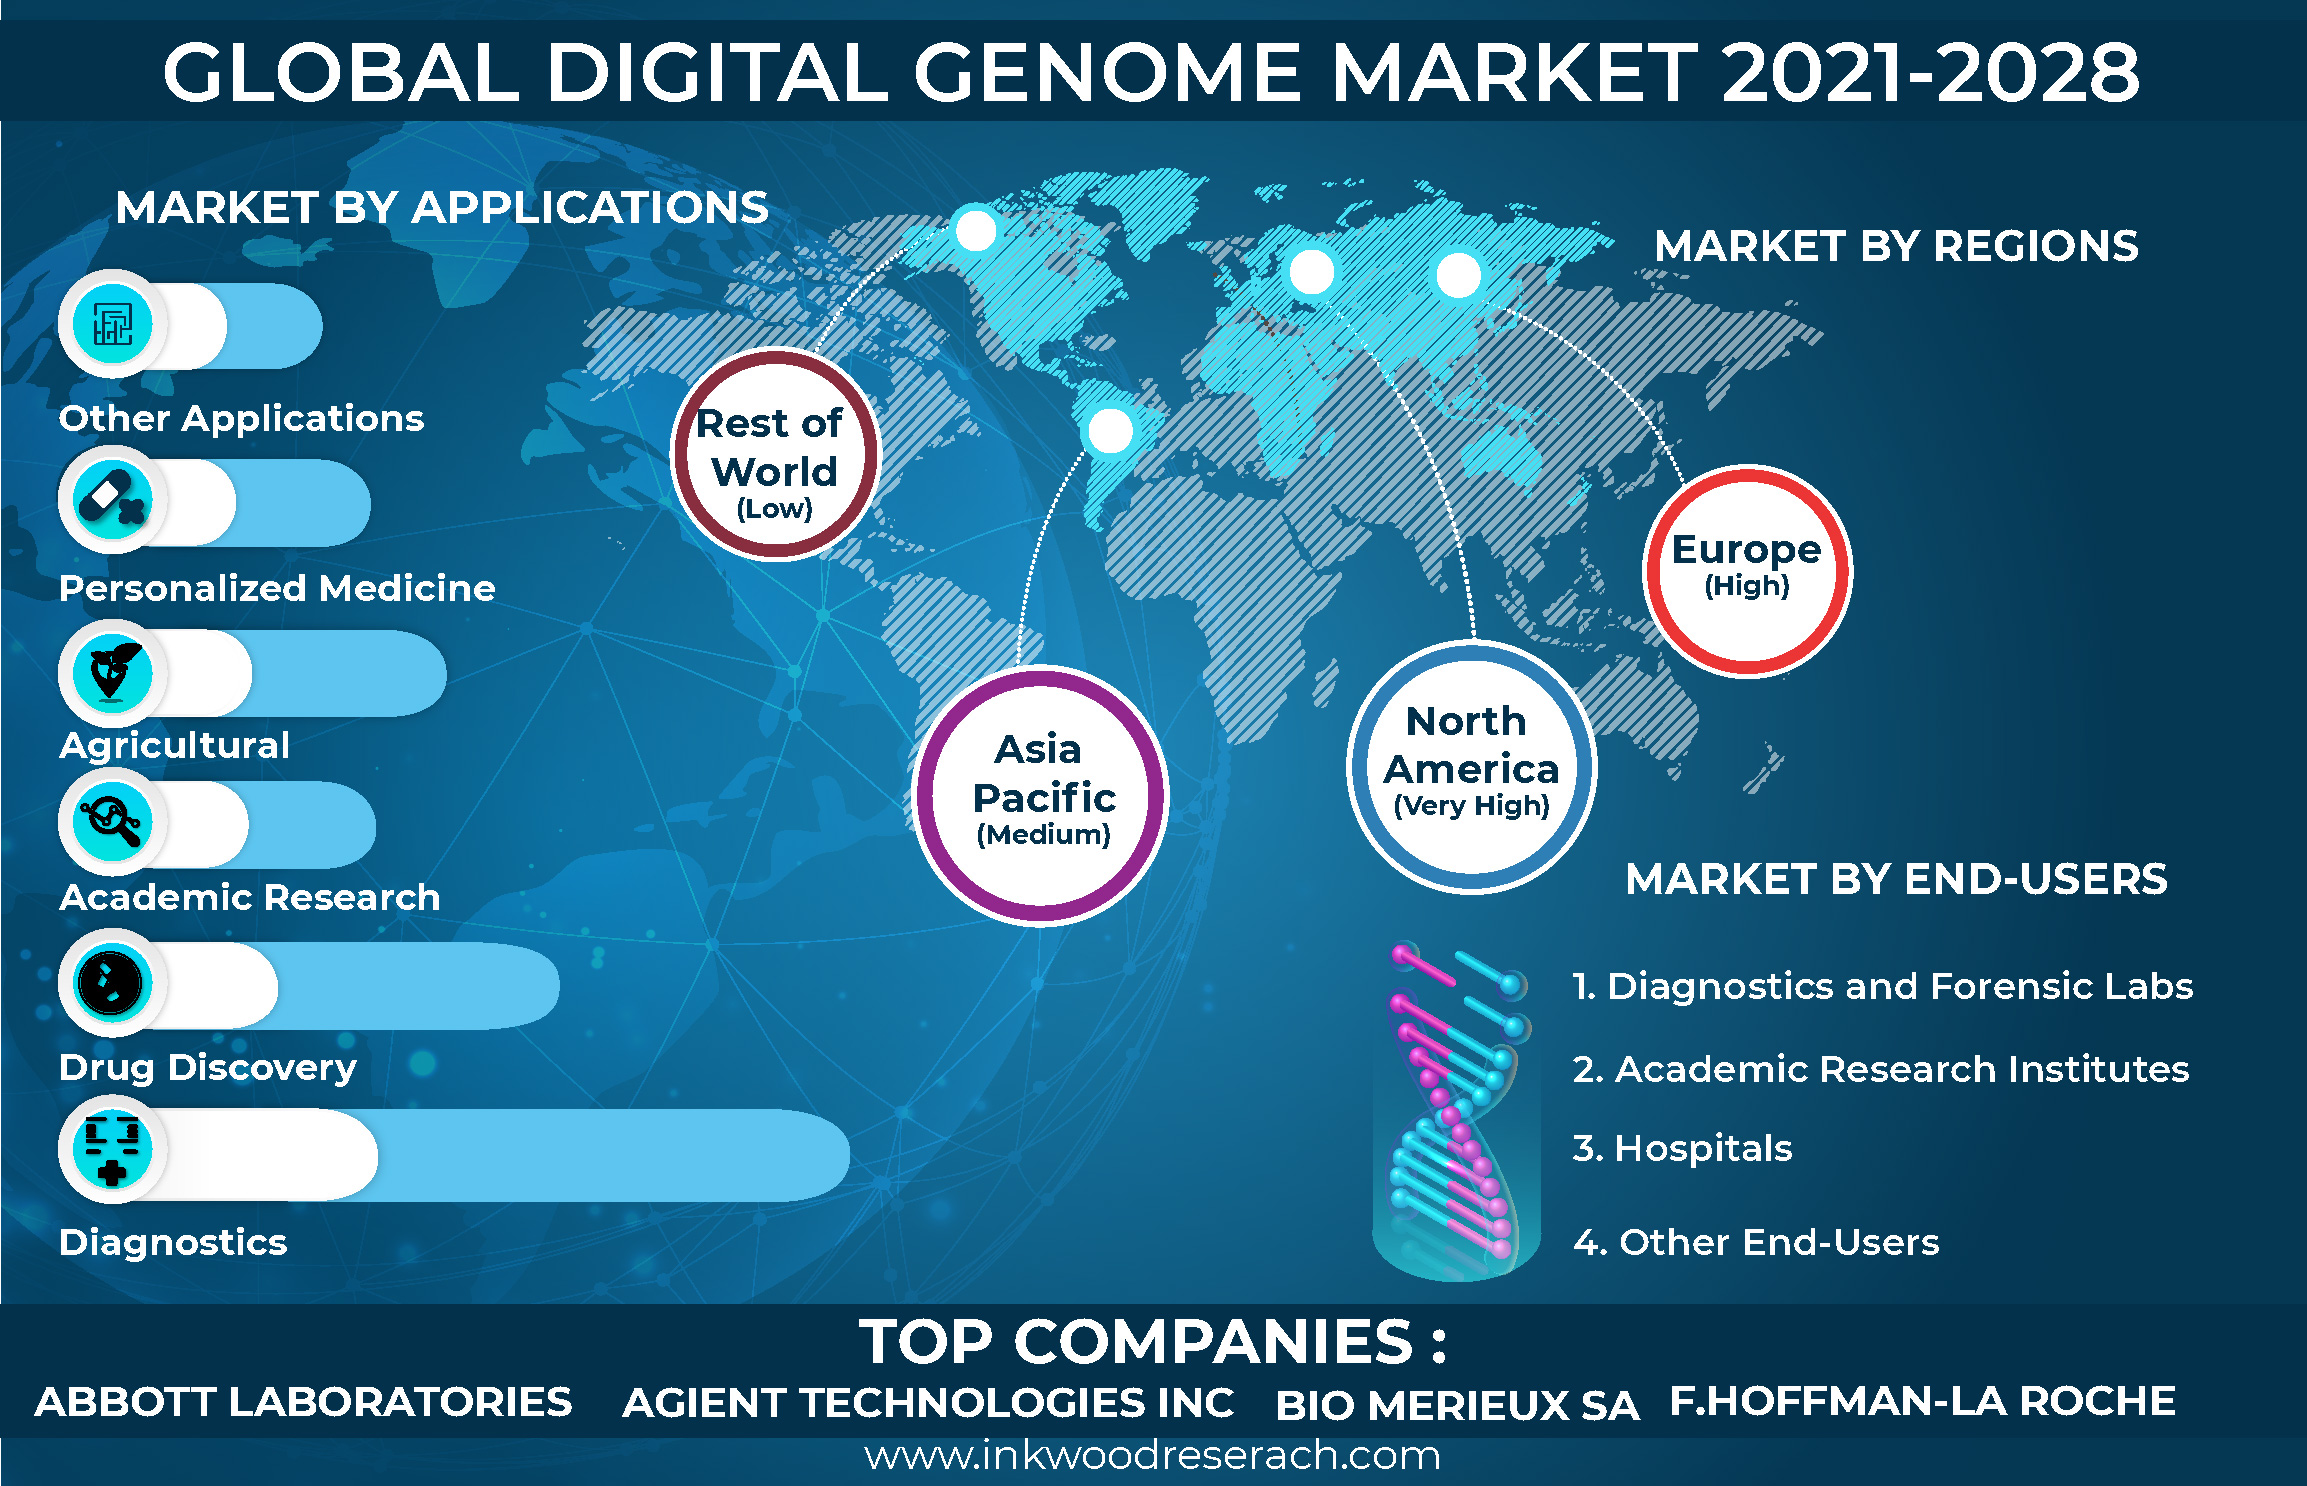 Advancing Technology to Create Opportunities in the Global Digital Genome Market